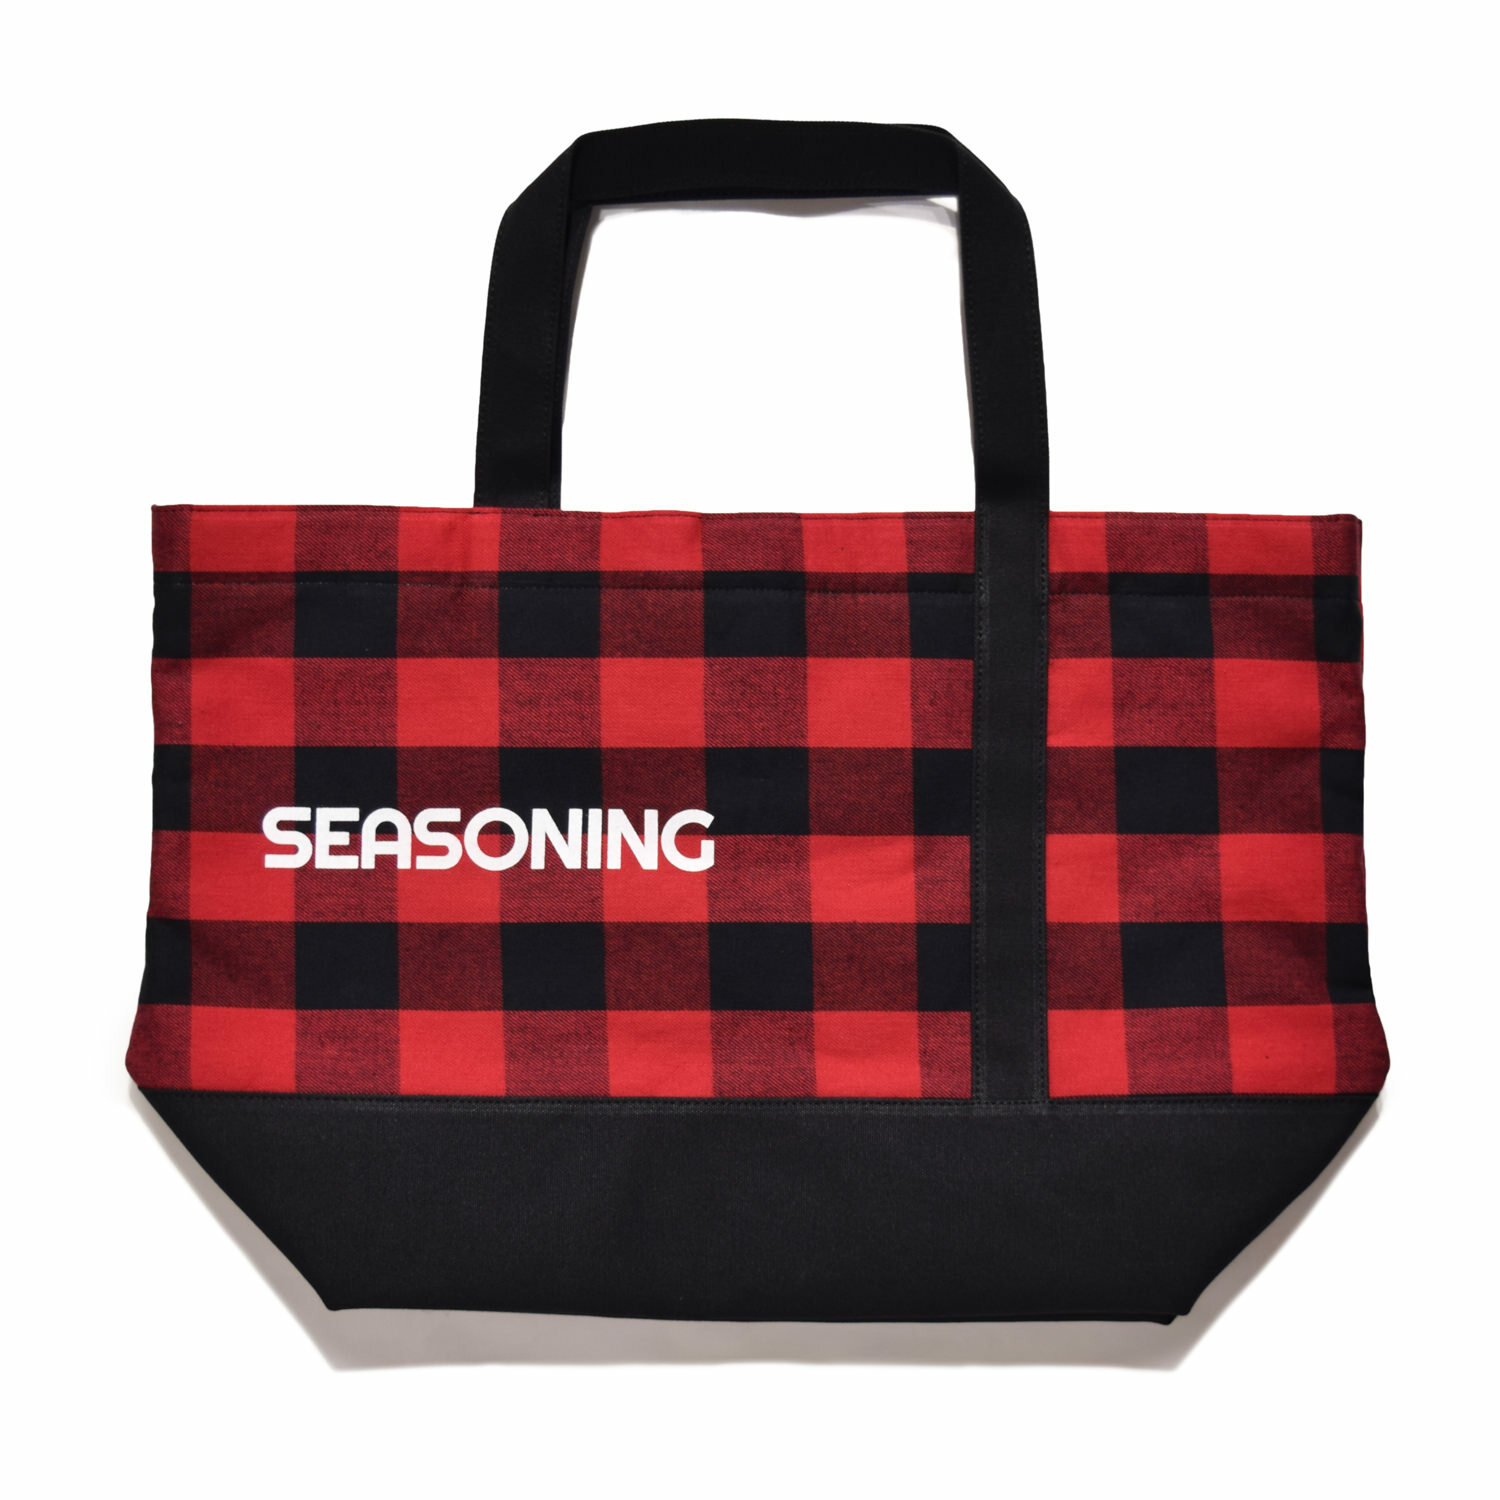 SEASONING TOTE BAG LARGE - RED